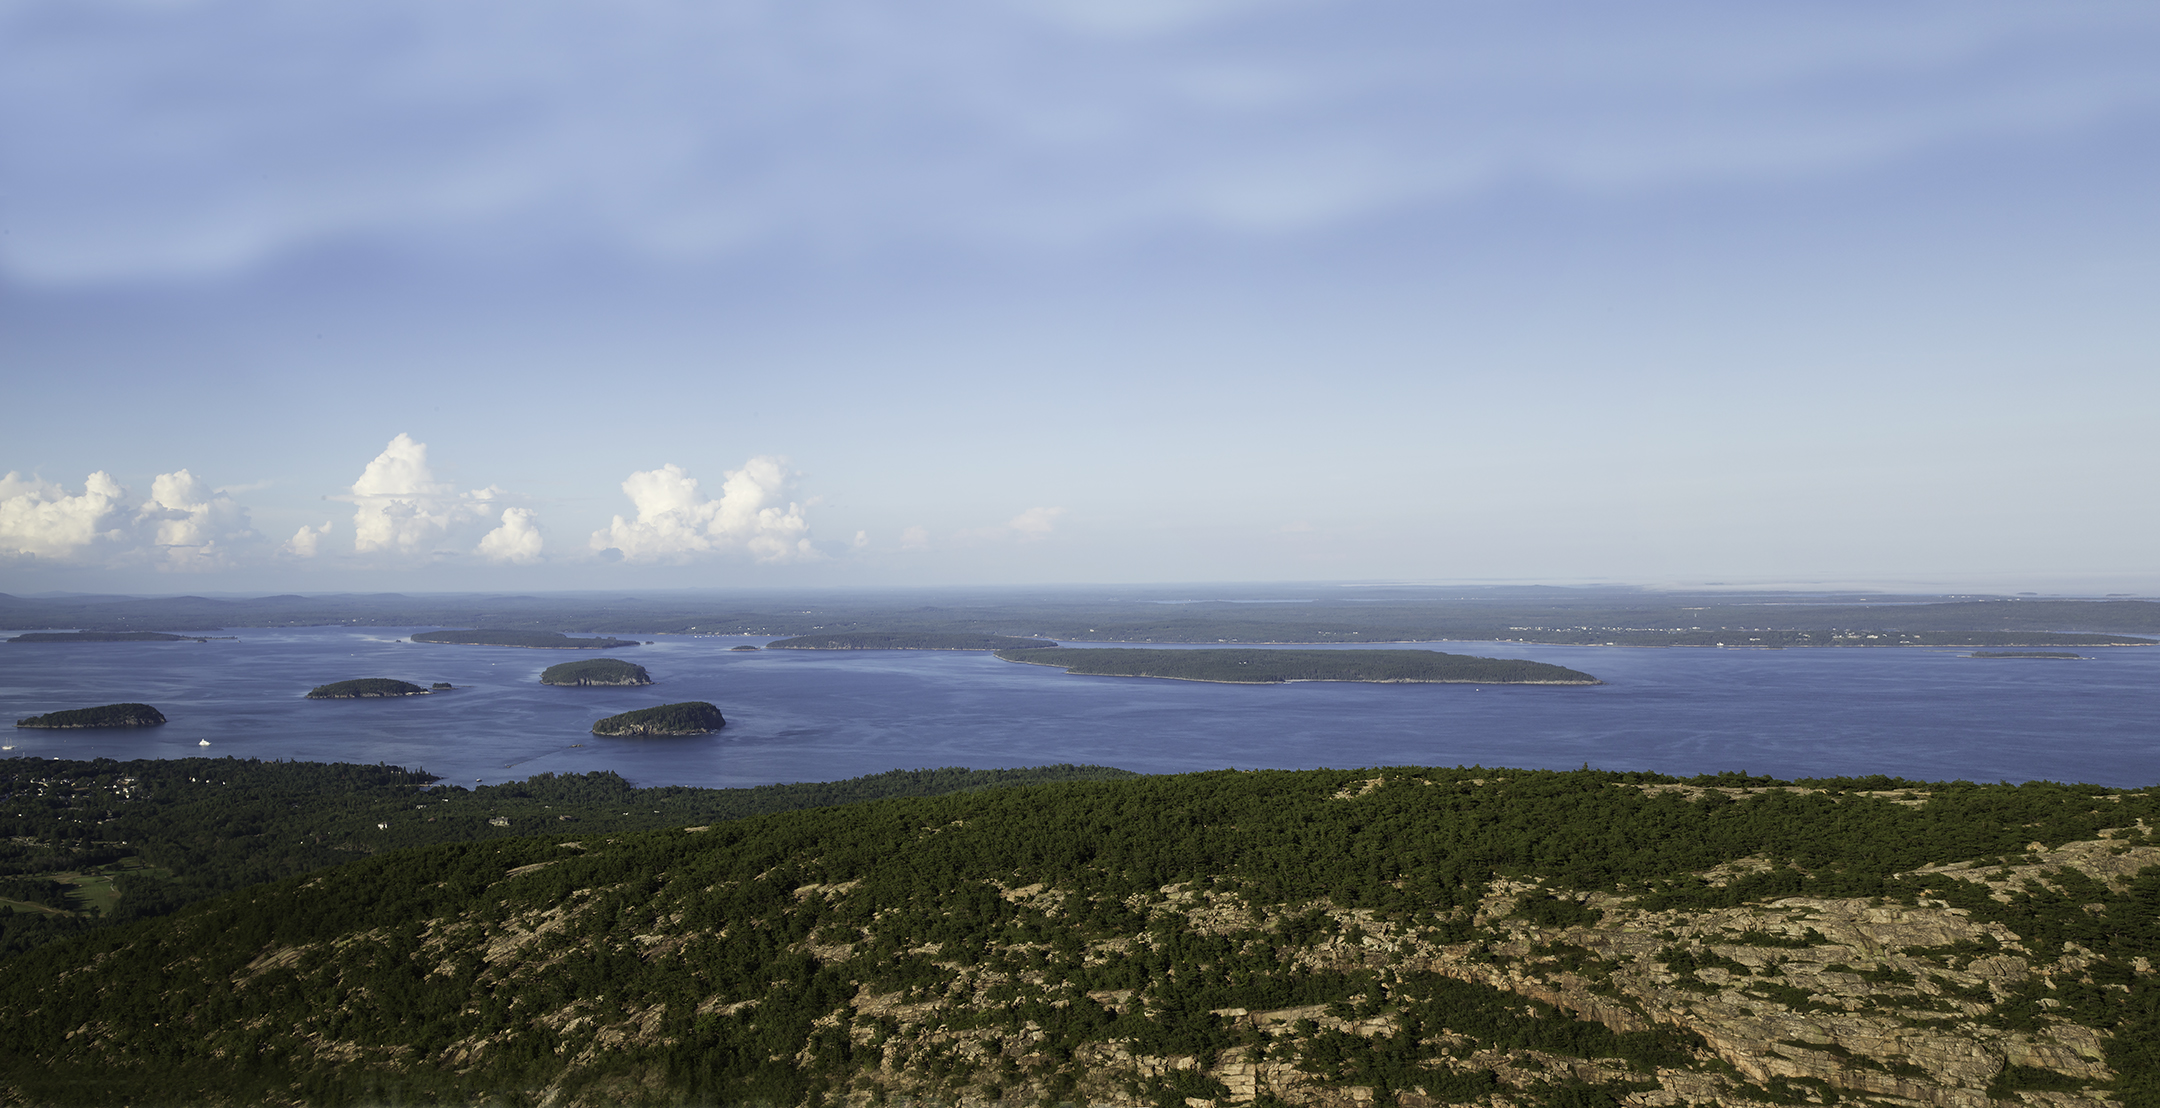 Cadillac Mountain, Porcupine Islands, Frenchman's Bay